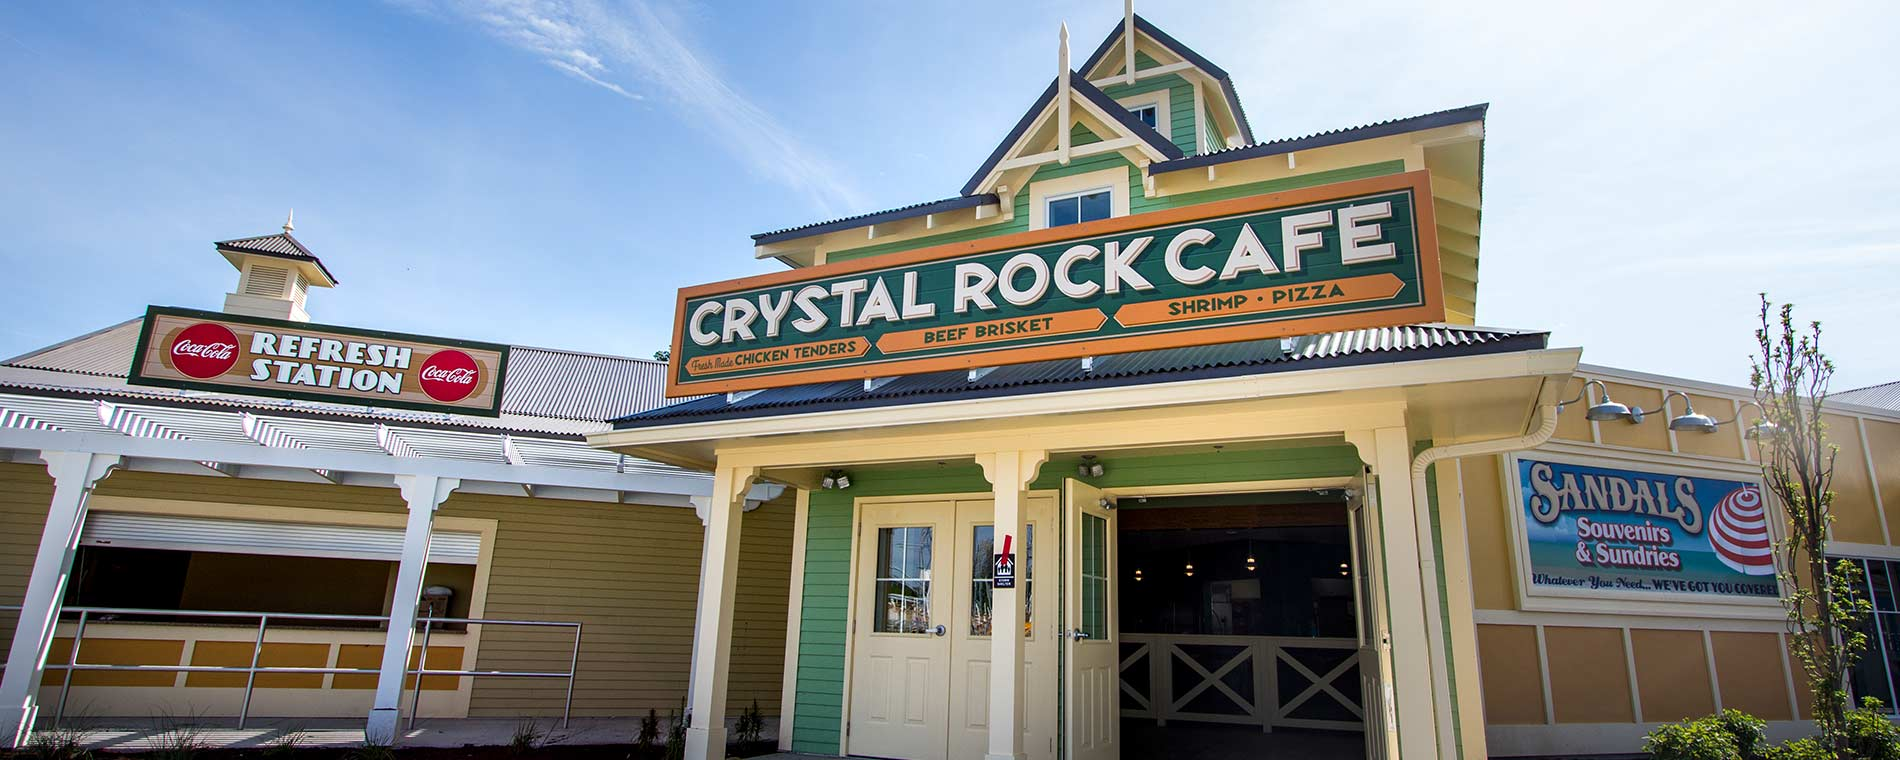 Crystal Rock Café